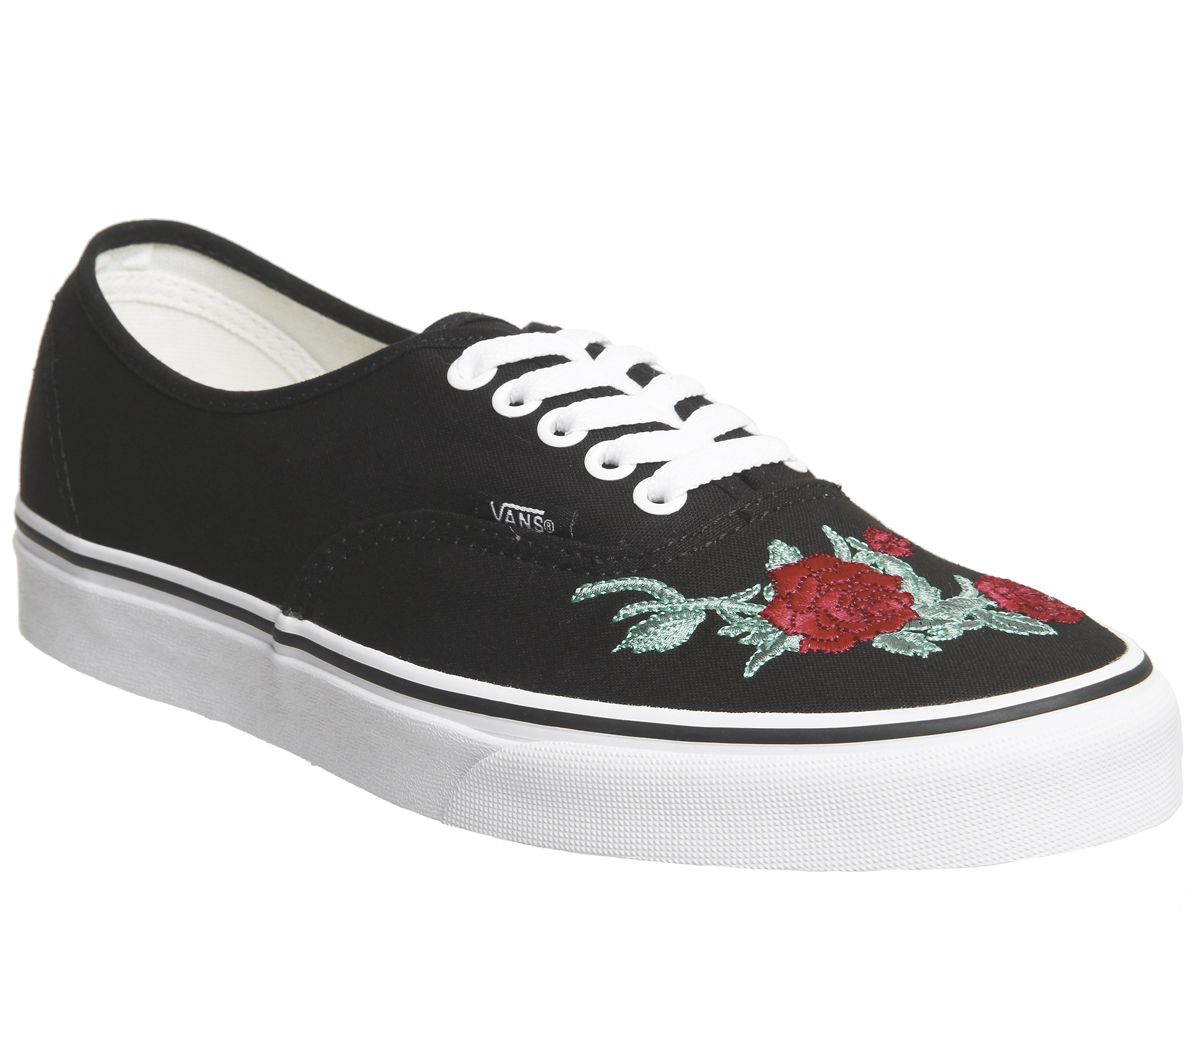 eb47df9ef5f1 Vans Authentic Trainers Black Red Rose - Hers trainers